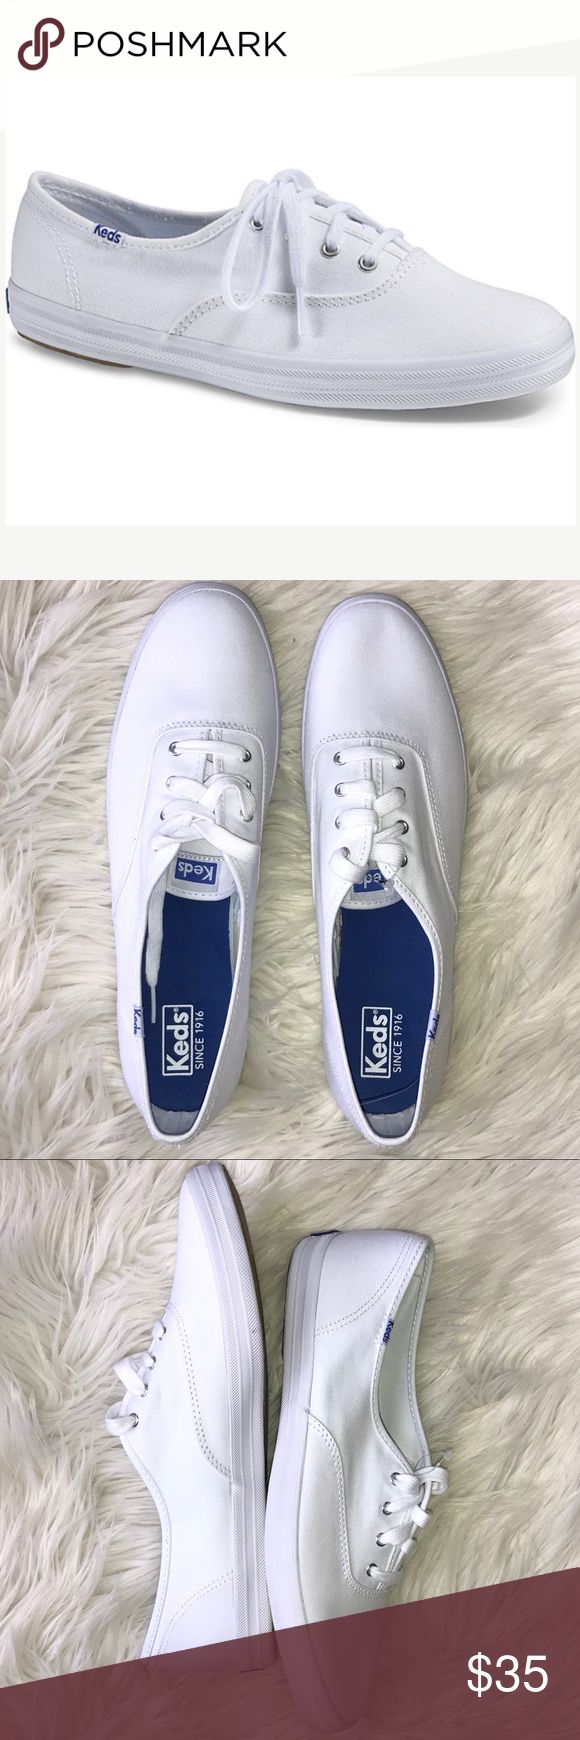 NEW Keds White Canvas Champion Original Sneakers New without box, never worn Keds Champion Original white sneakers.  Your wardrobe essential, go with everything casual shoe.   Classic Canvas upper.  Flexible textured rubber outsole. Women's Size 12. Keds Shoes Sneakers